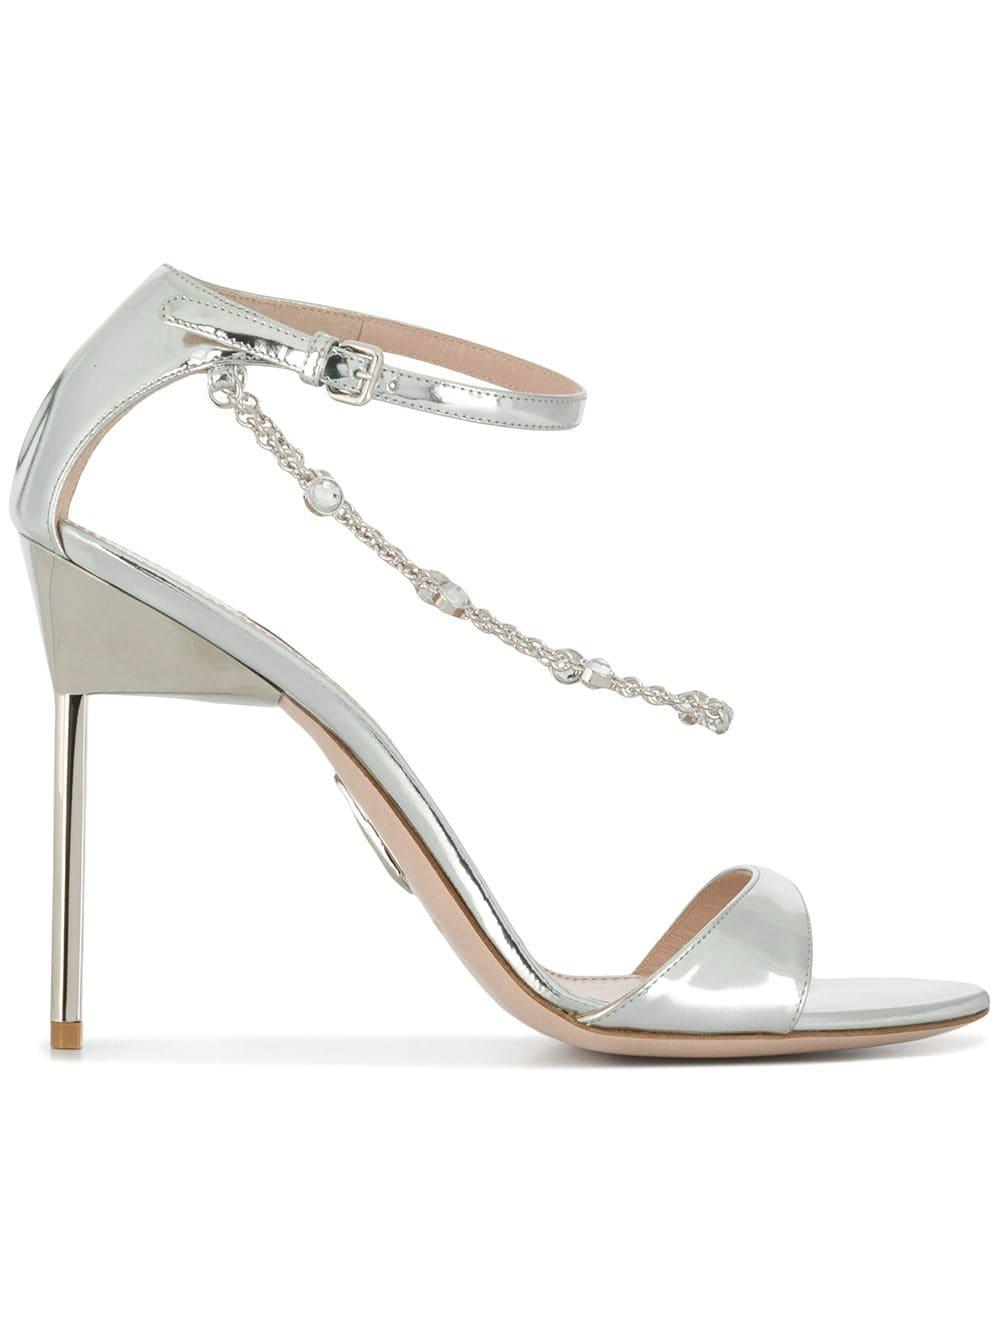 12064aef0 Miu Miu - Metallic Crystal Chain Stiletto Sandals - Lyst. View fullscreen